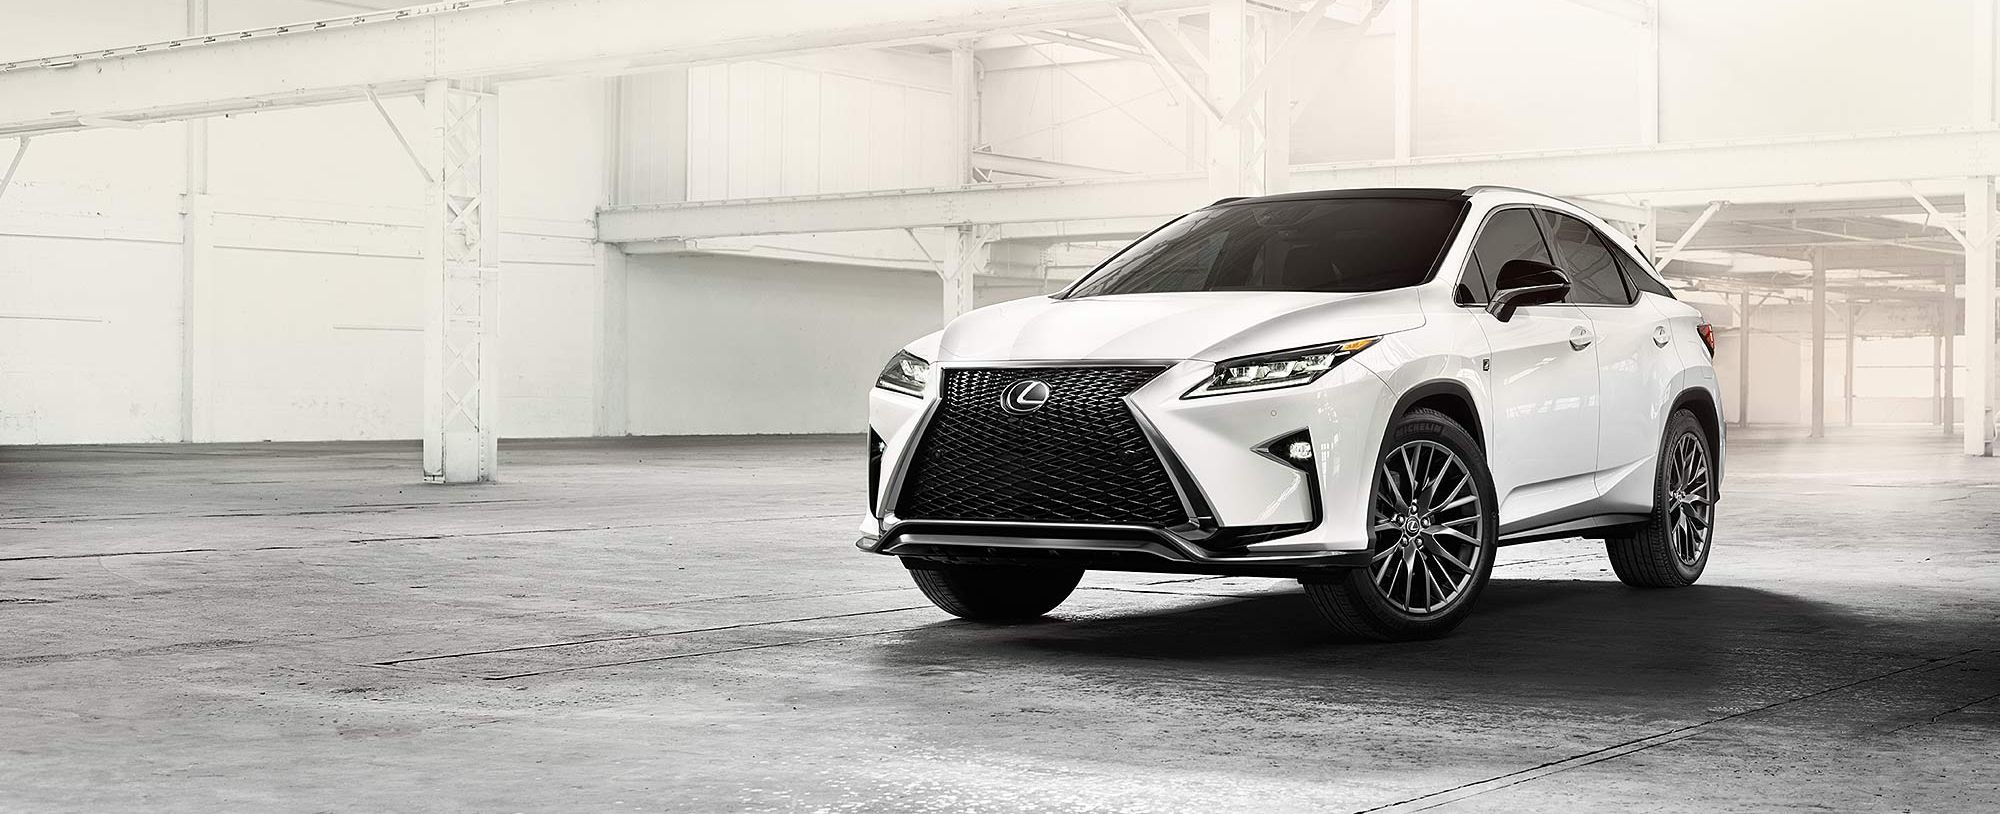 2016 Lexus RX for sale in Chantilly, VA